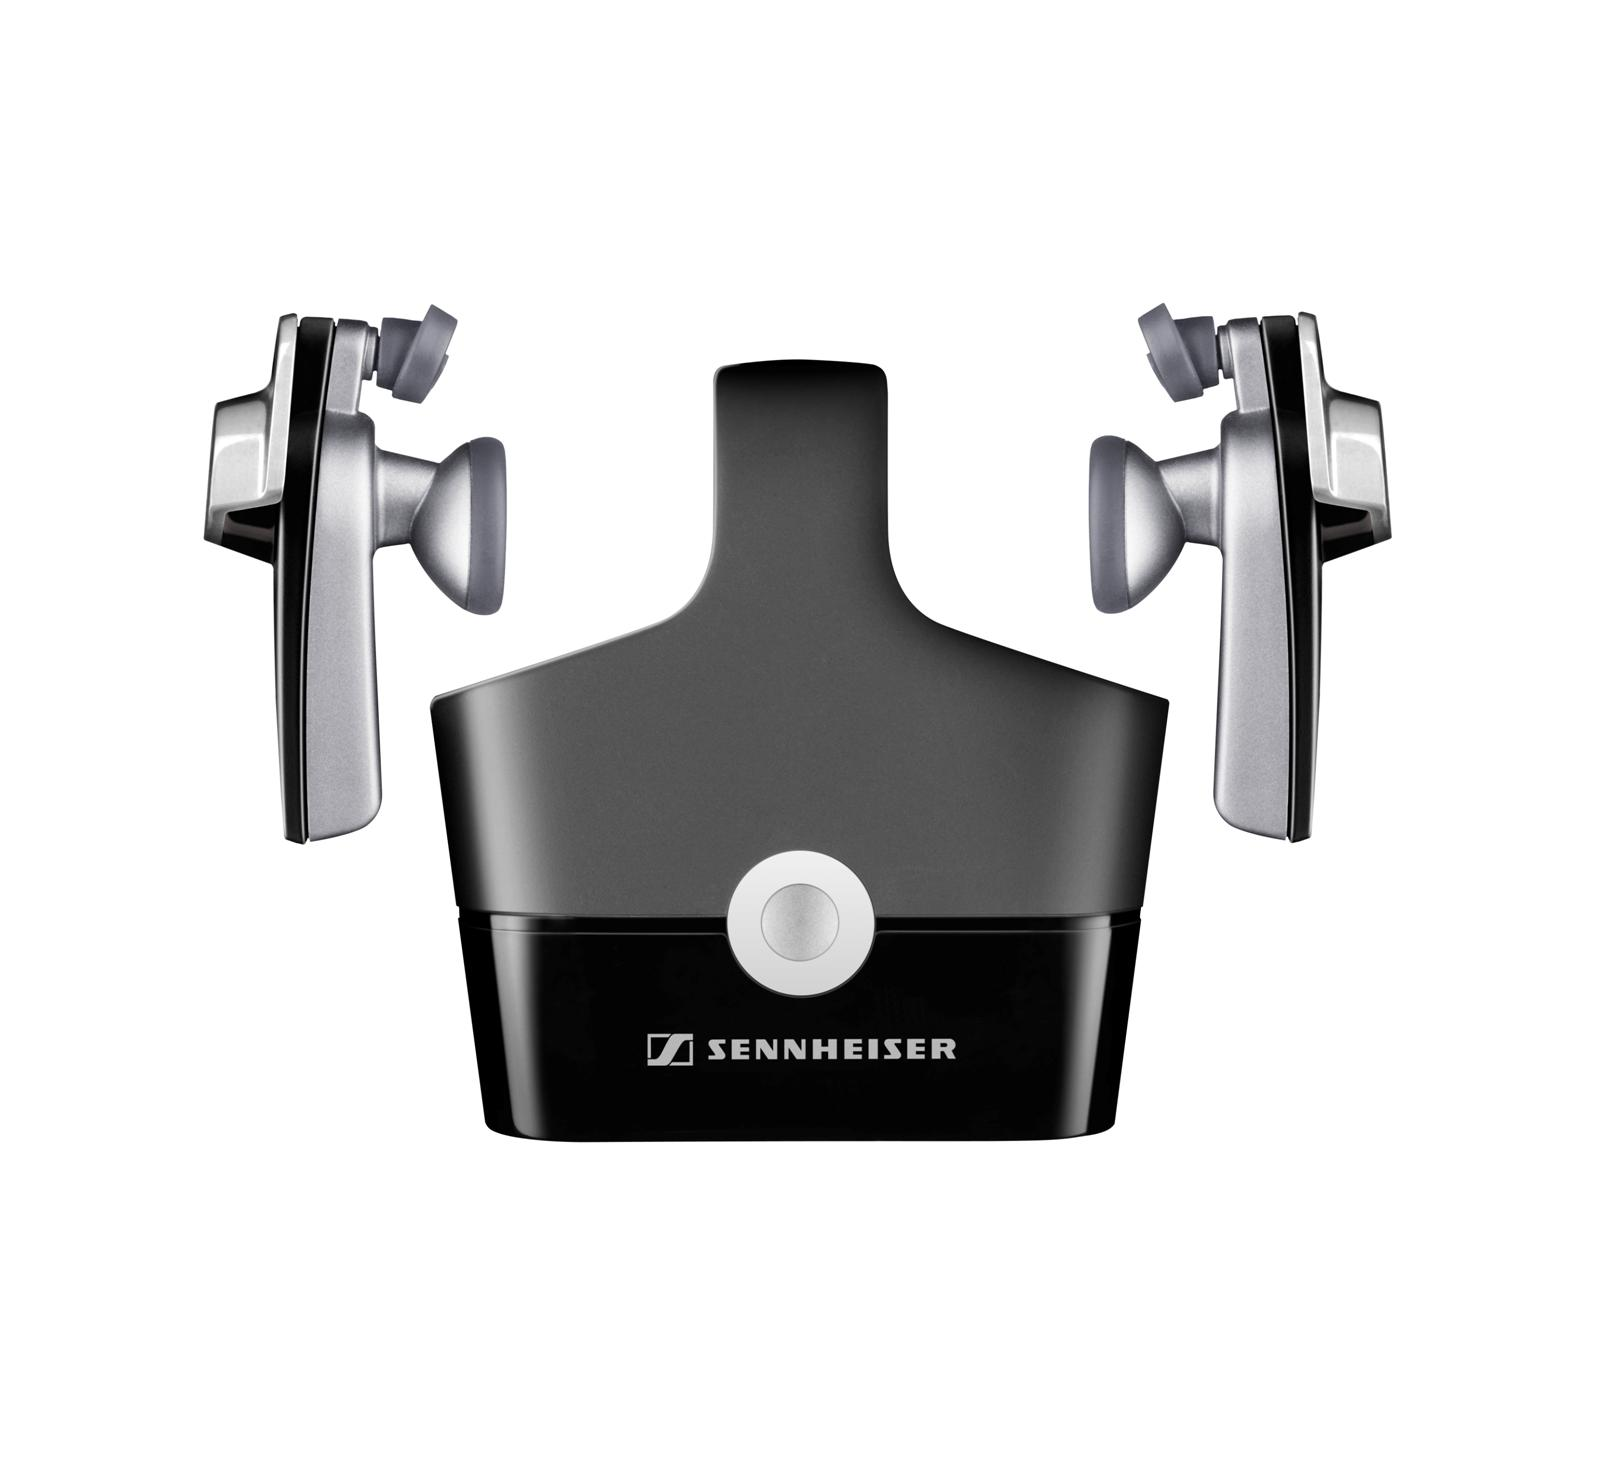 sennheiser mx w1 couteurs sans fil kleer blogue de geek. Black Bedroom Furniture Sets. Home Design Ideas